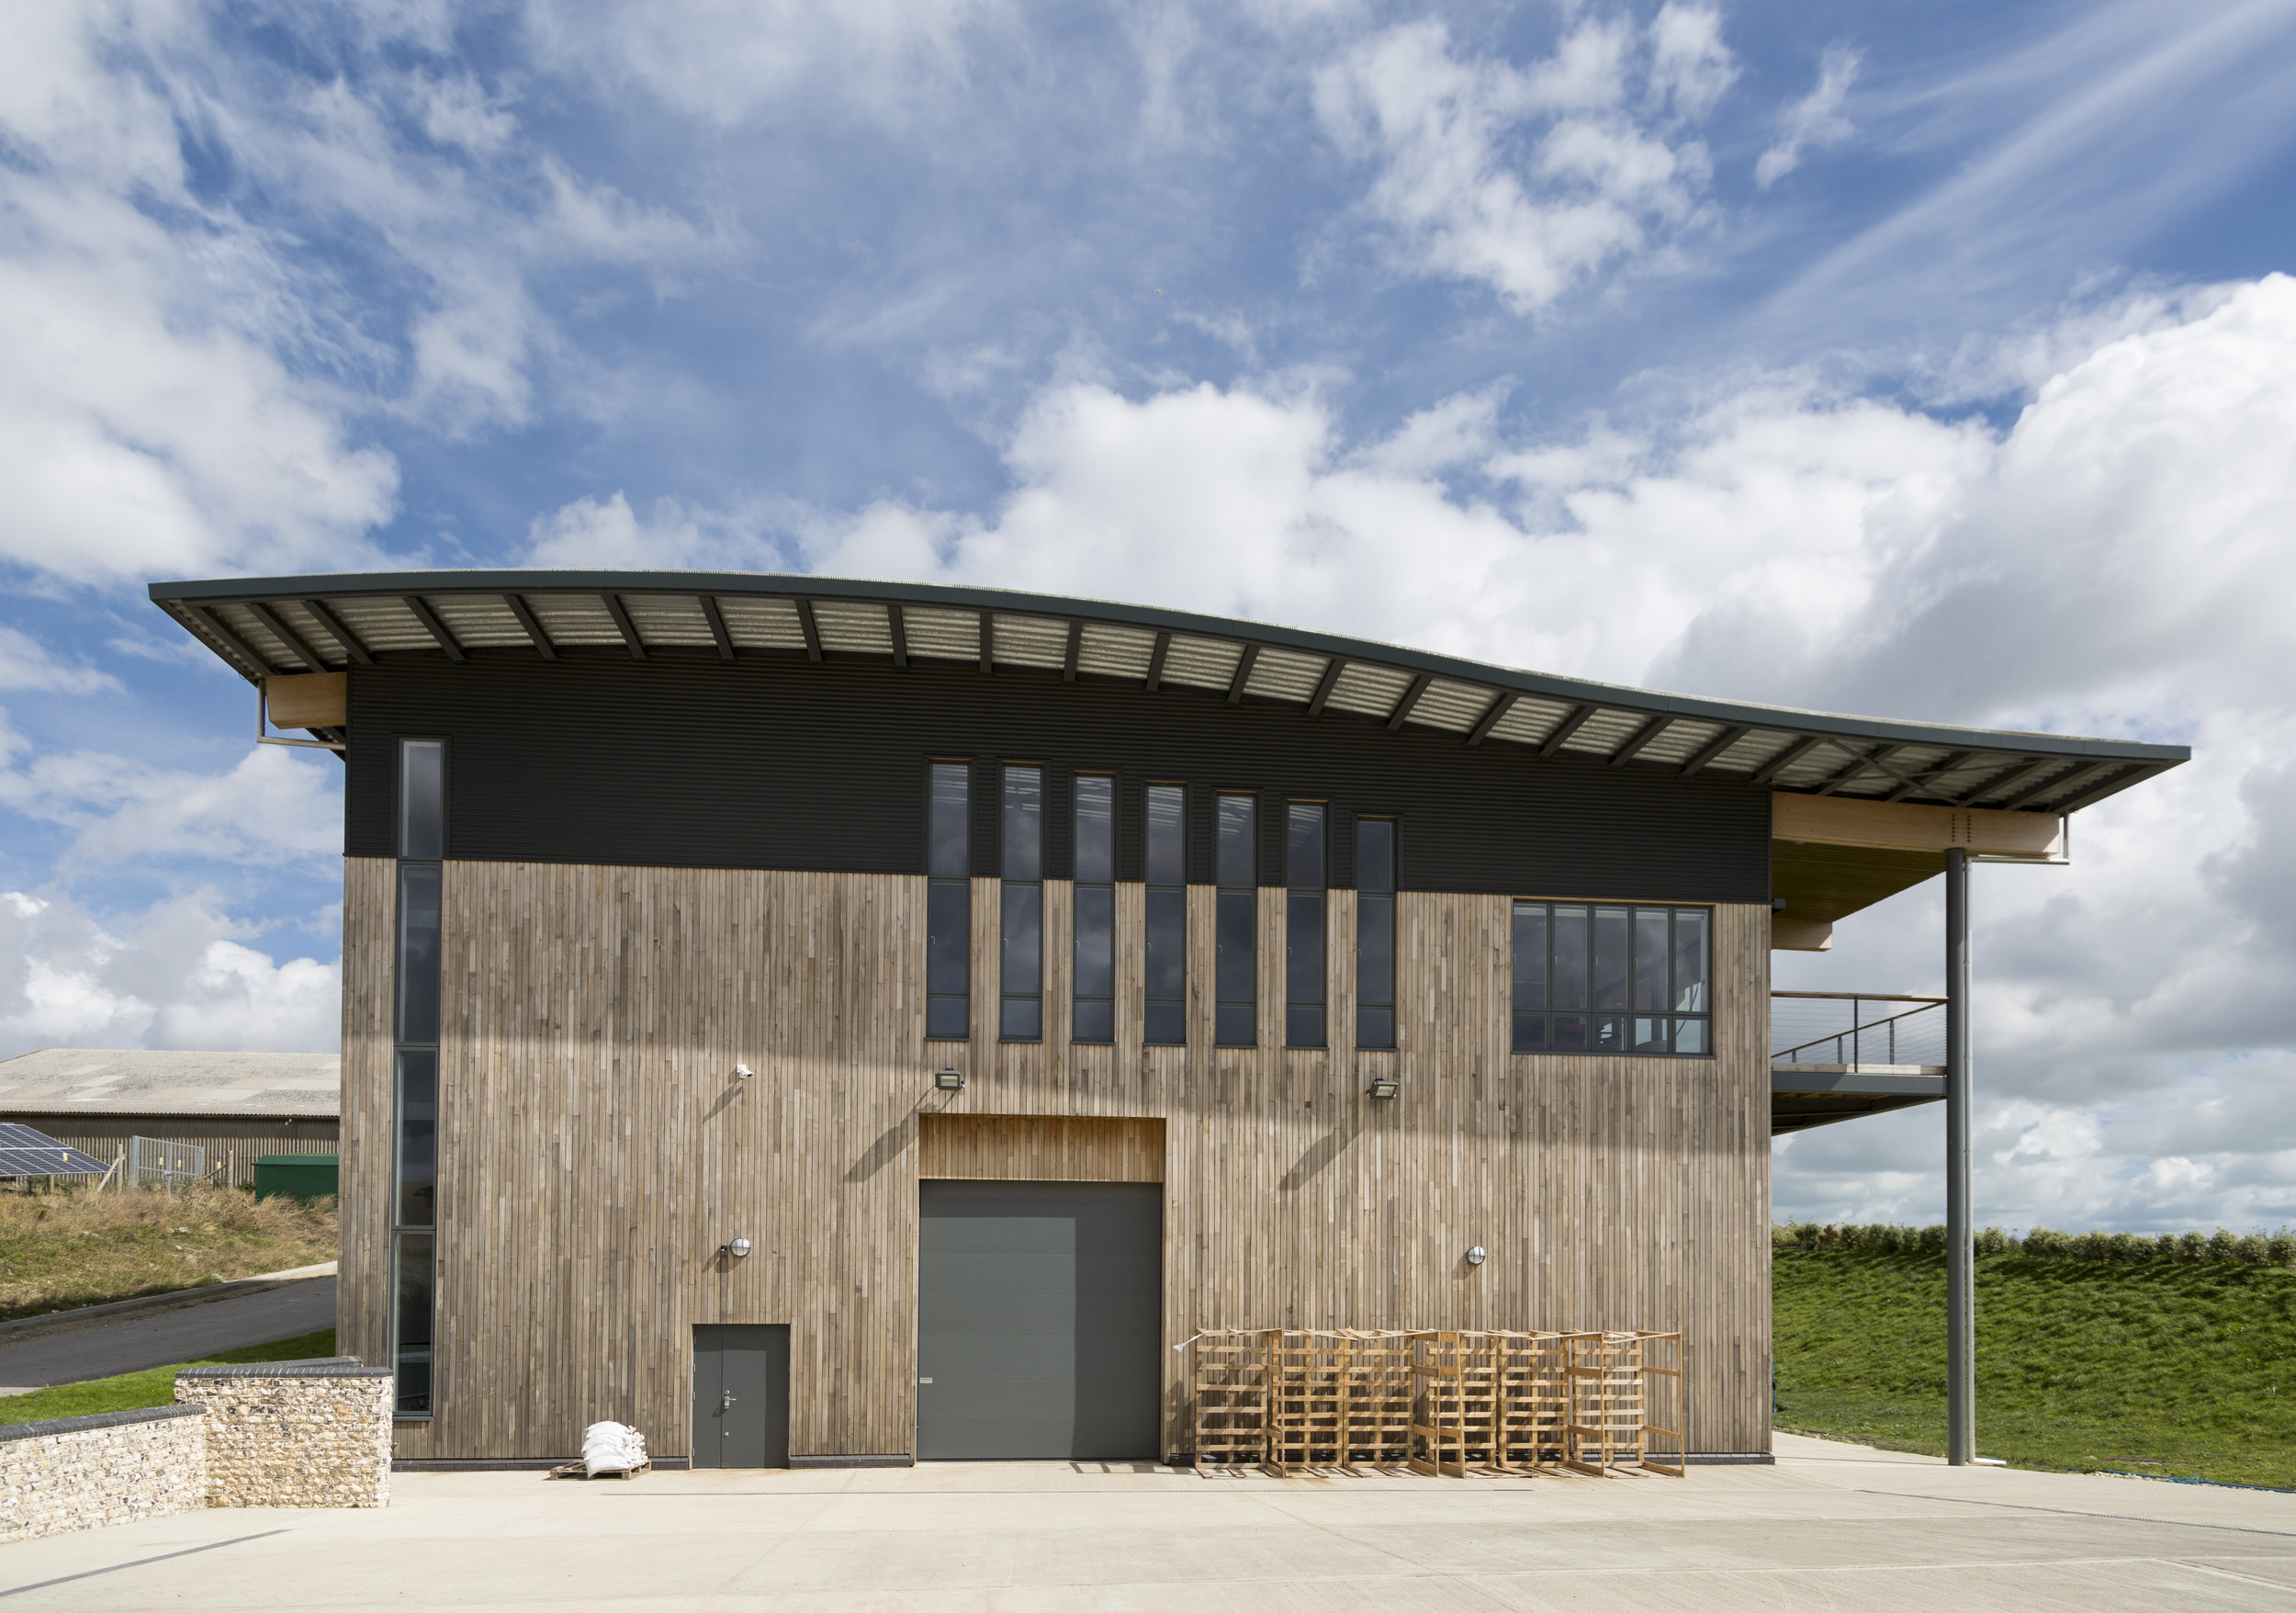 Rathfinny Estate Winery, East Sussex, completed October 2013 - The concept design & lead designer was Martin Swatton Design LTD. Mark as a Director of Designcubed, acted as project architect, site architect & design co-ordinatorAwards:Sussex Heritage Trust Awards 2015, commercial building section (winner)RIBA South East Awards 2015 (shortlisted)A state-of-the-art winery located in the South Downs valley, tipped to become one of the biggest single estate wineries in Europe, with a plan to produce 1 million bottles of Sussex Sparkling wine per year